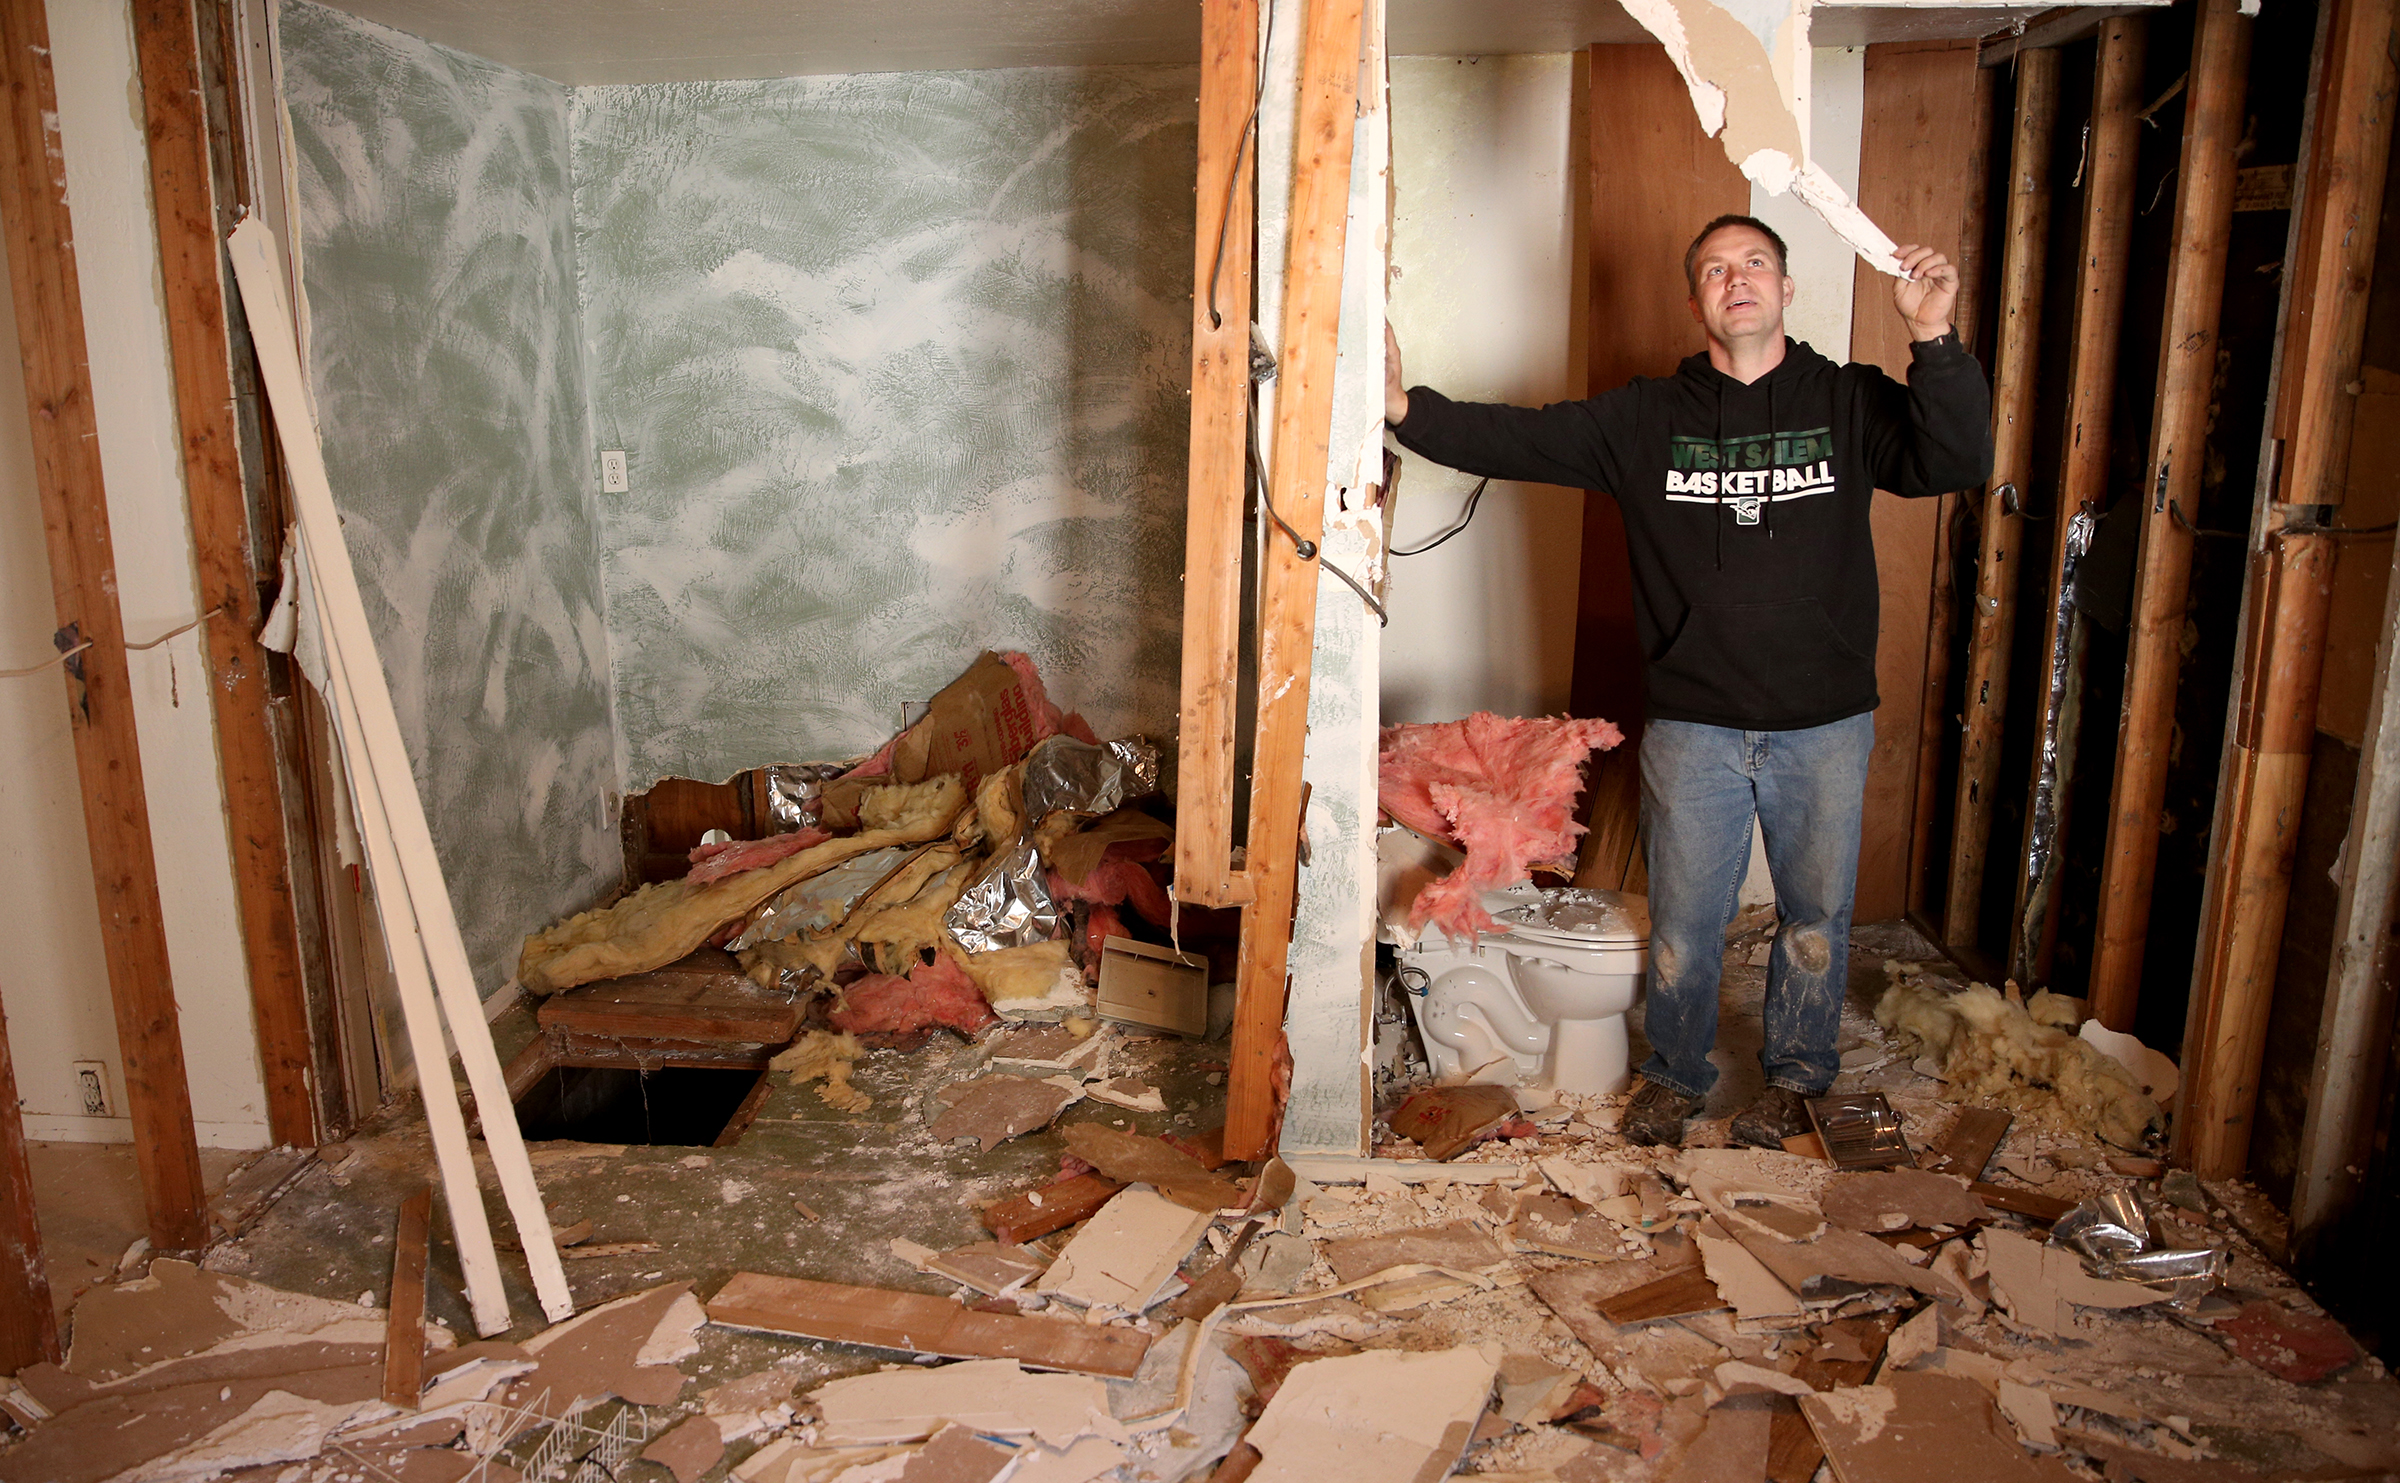 Travis Tubbs shows the last room in his home torn up, on Thursday, Nov. 15, 2018, in Jefferson. The family purchased the property last year and found it was contaminated with meth.